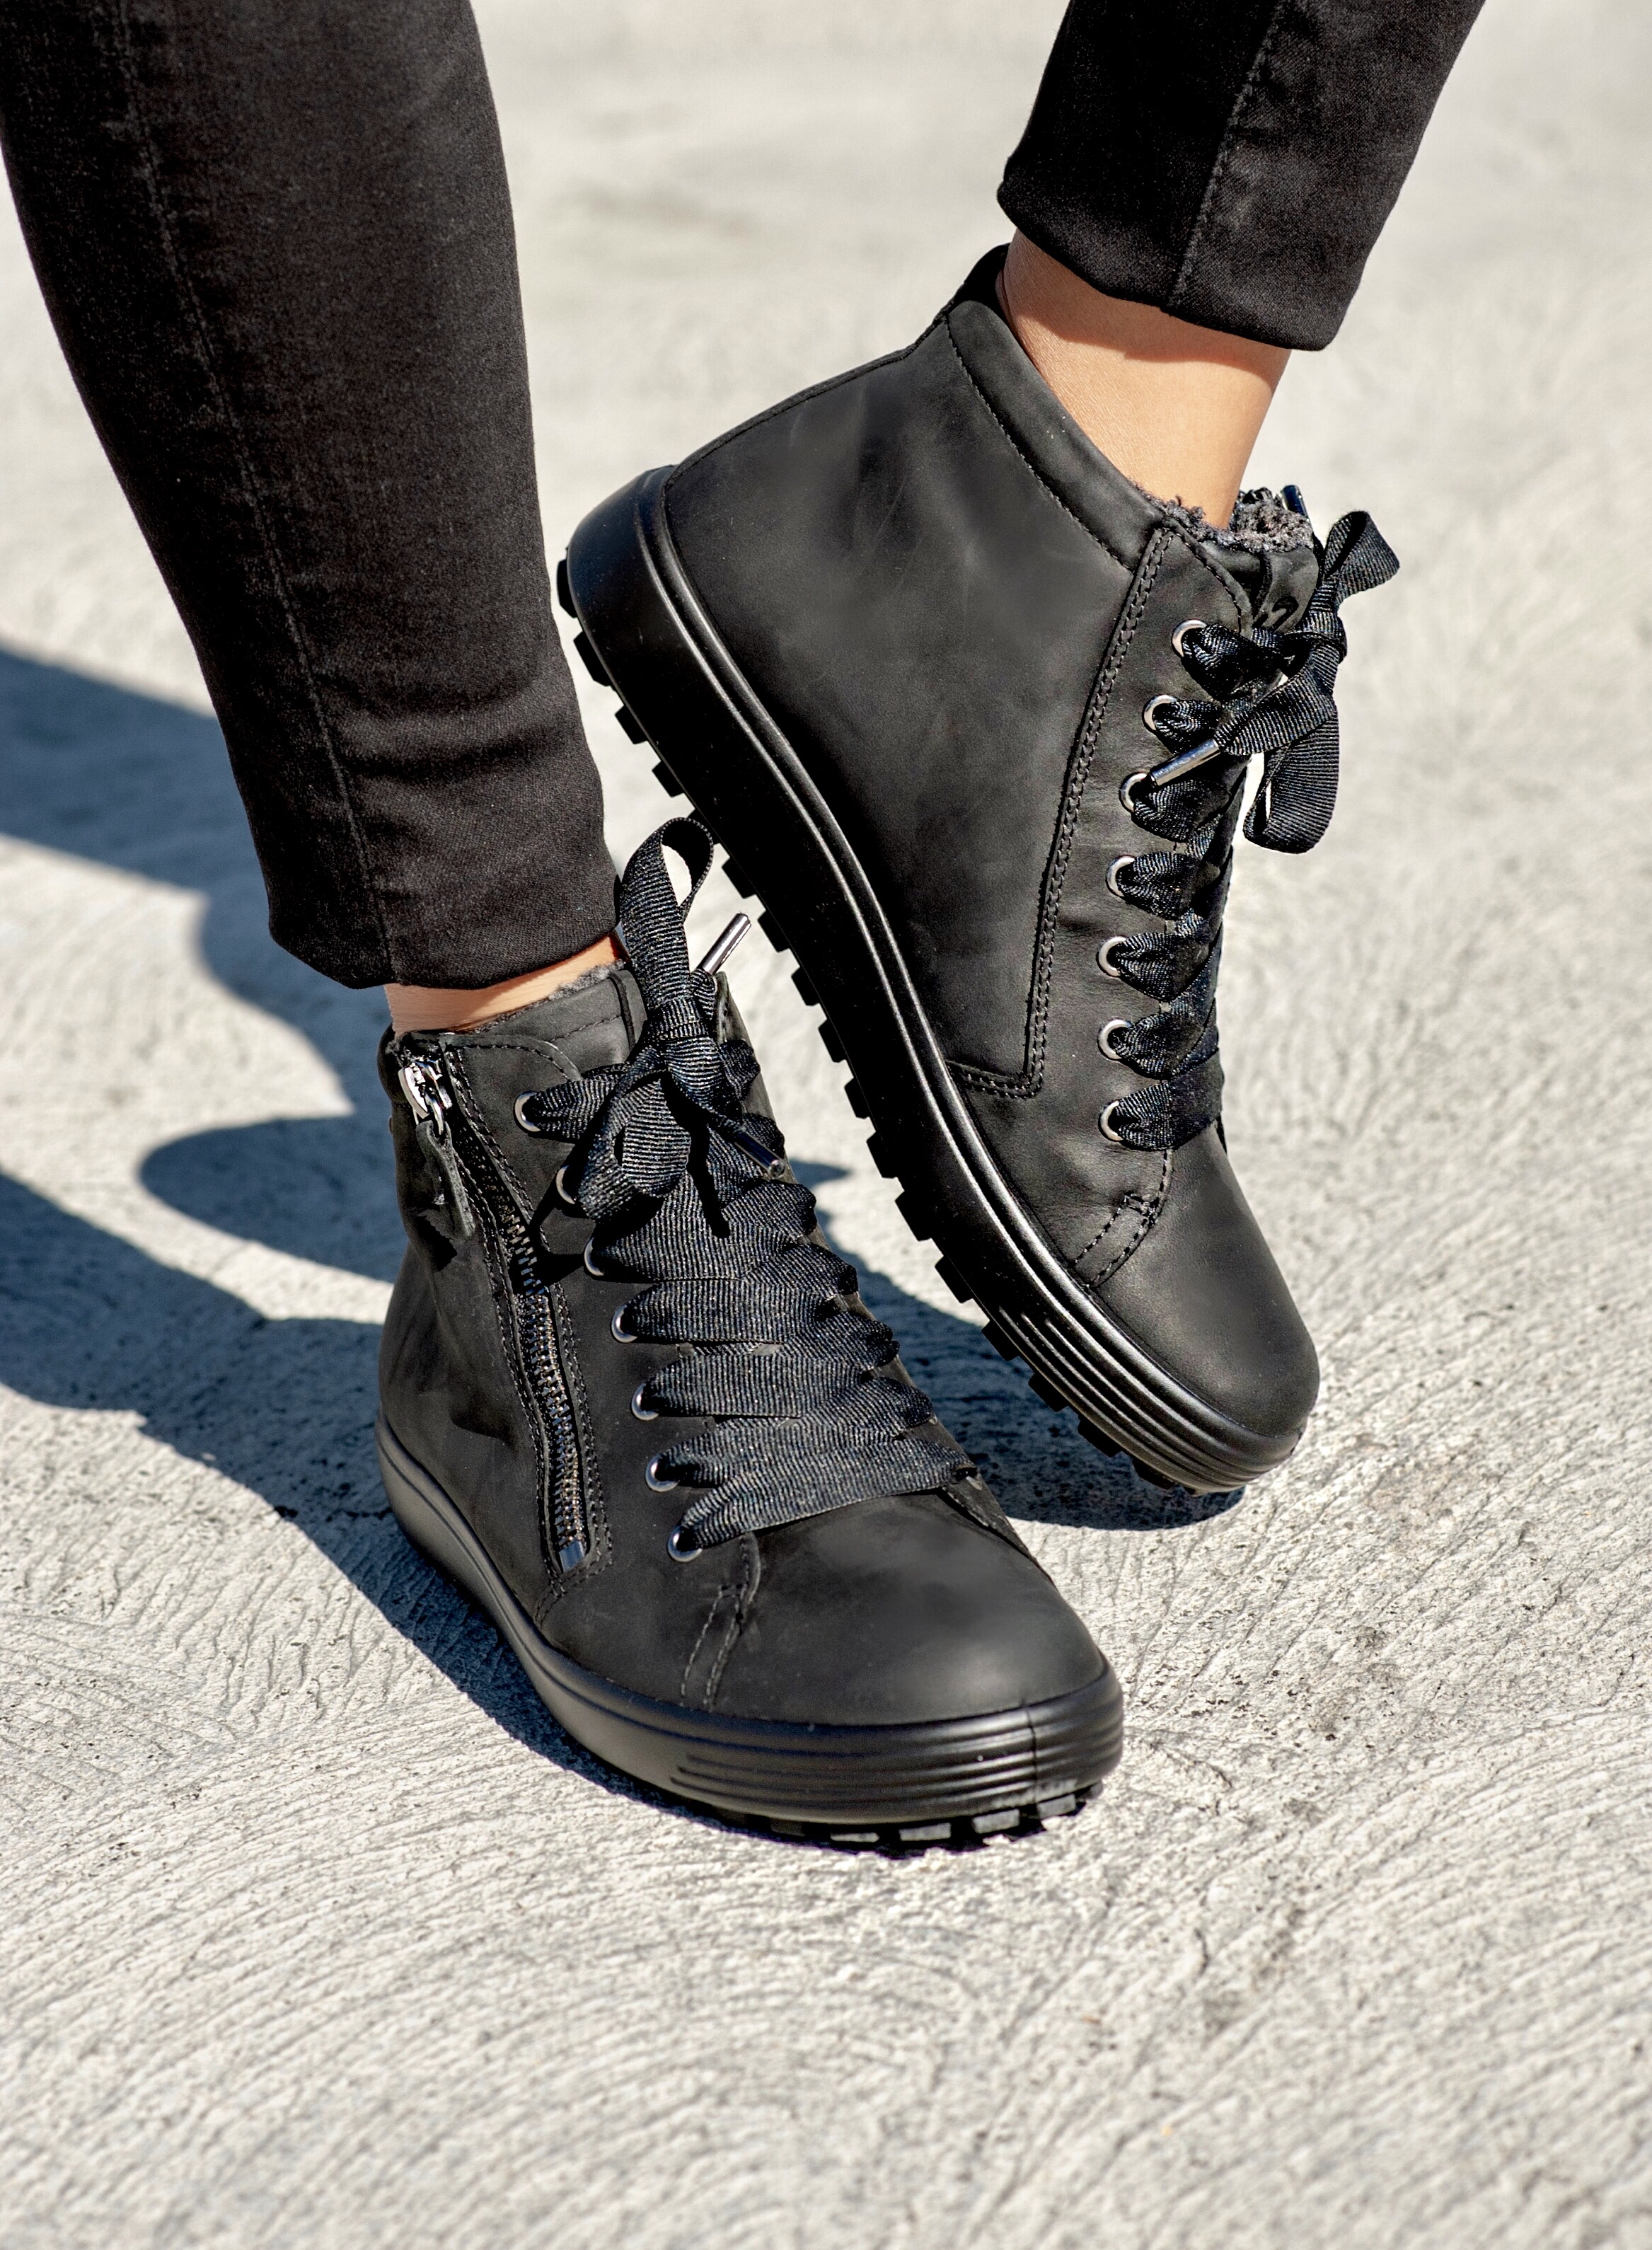 5d4cc290892f2 ECCO New Lace Up Boots Have Arrived! - A personal blog by Jen Adams